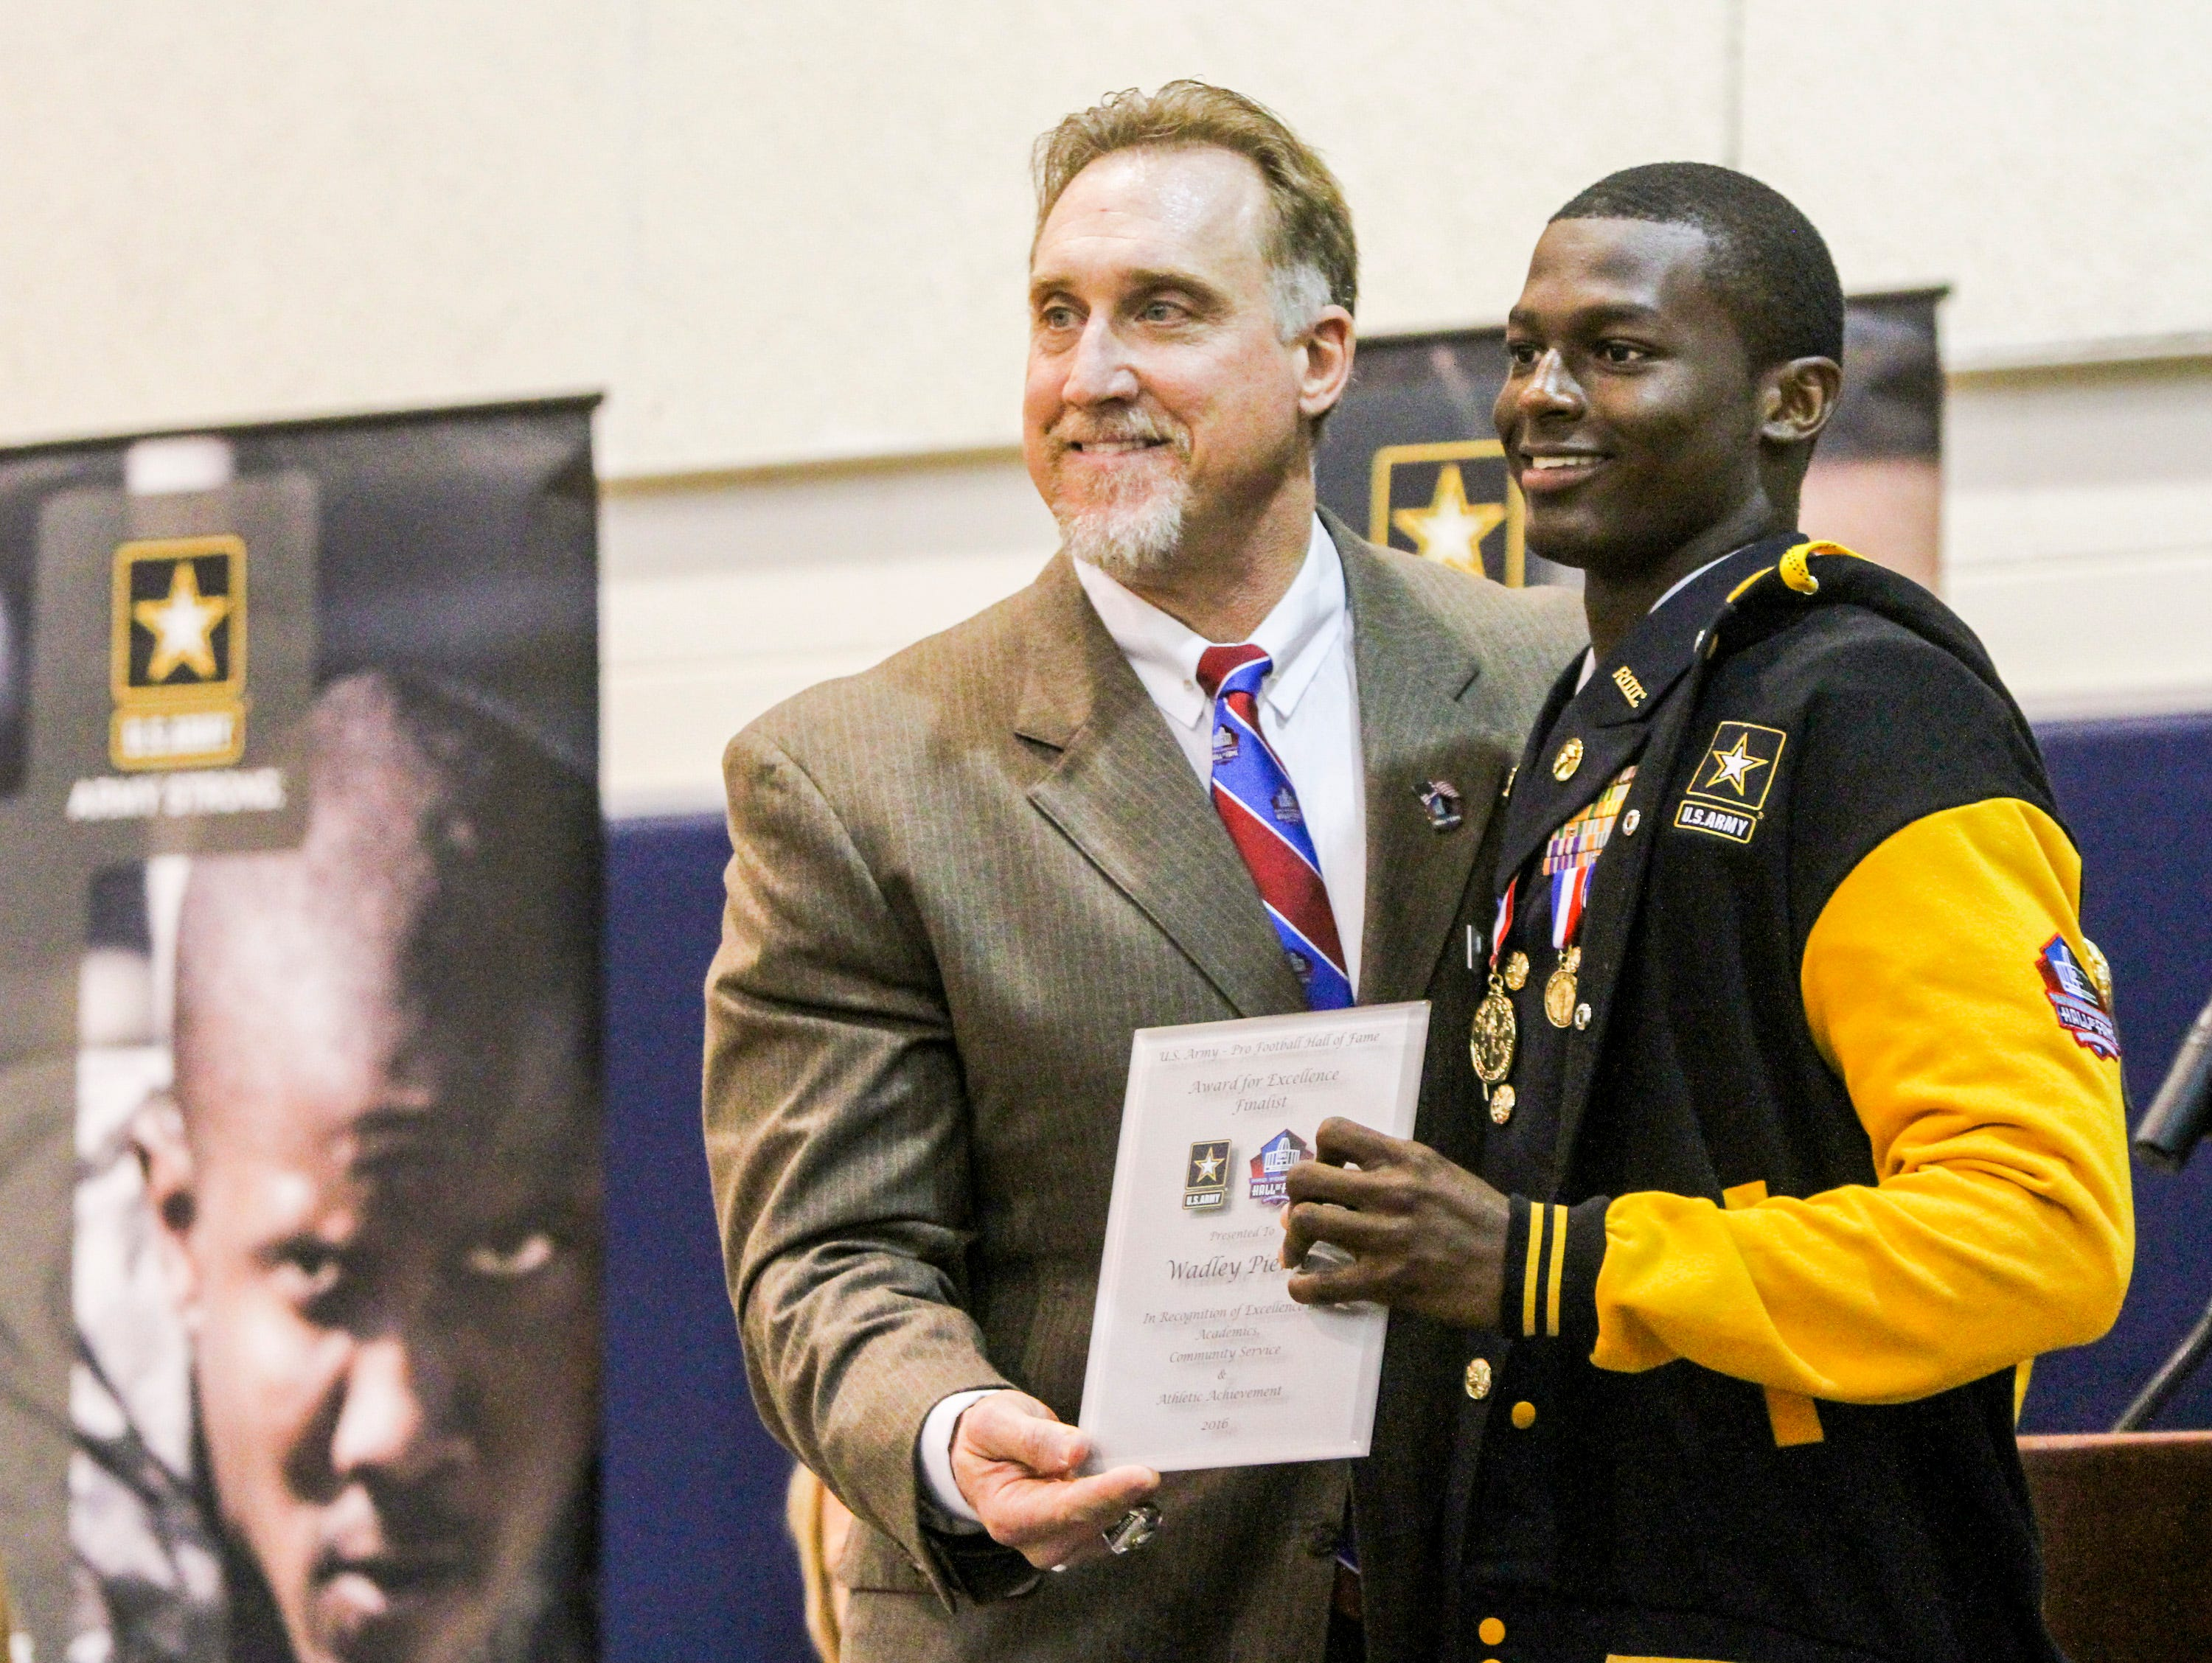 Hall of Fame NFL player Kevin Greene presents Wadley Pierre with his recognition award. Lehigh Senior High senior Wadley Pierre was nominated as a finalist for the US Army and Pro Football Hall of Fame as a student-athlete finalist for an award of excellence. Hall of Fame NFL player Kevin Greene was there to present the recognition.